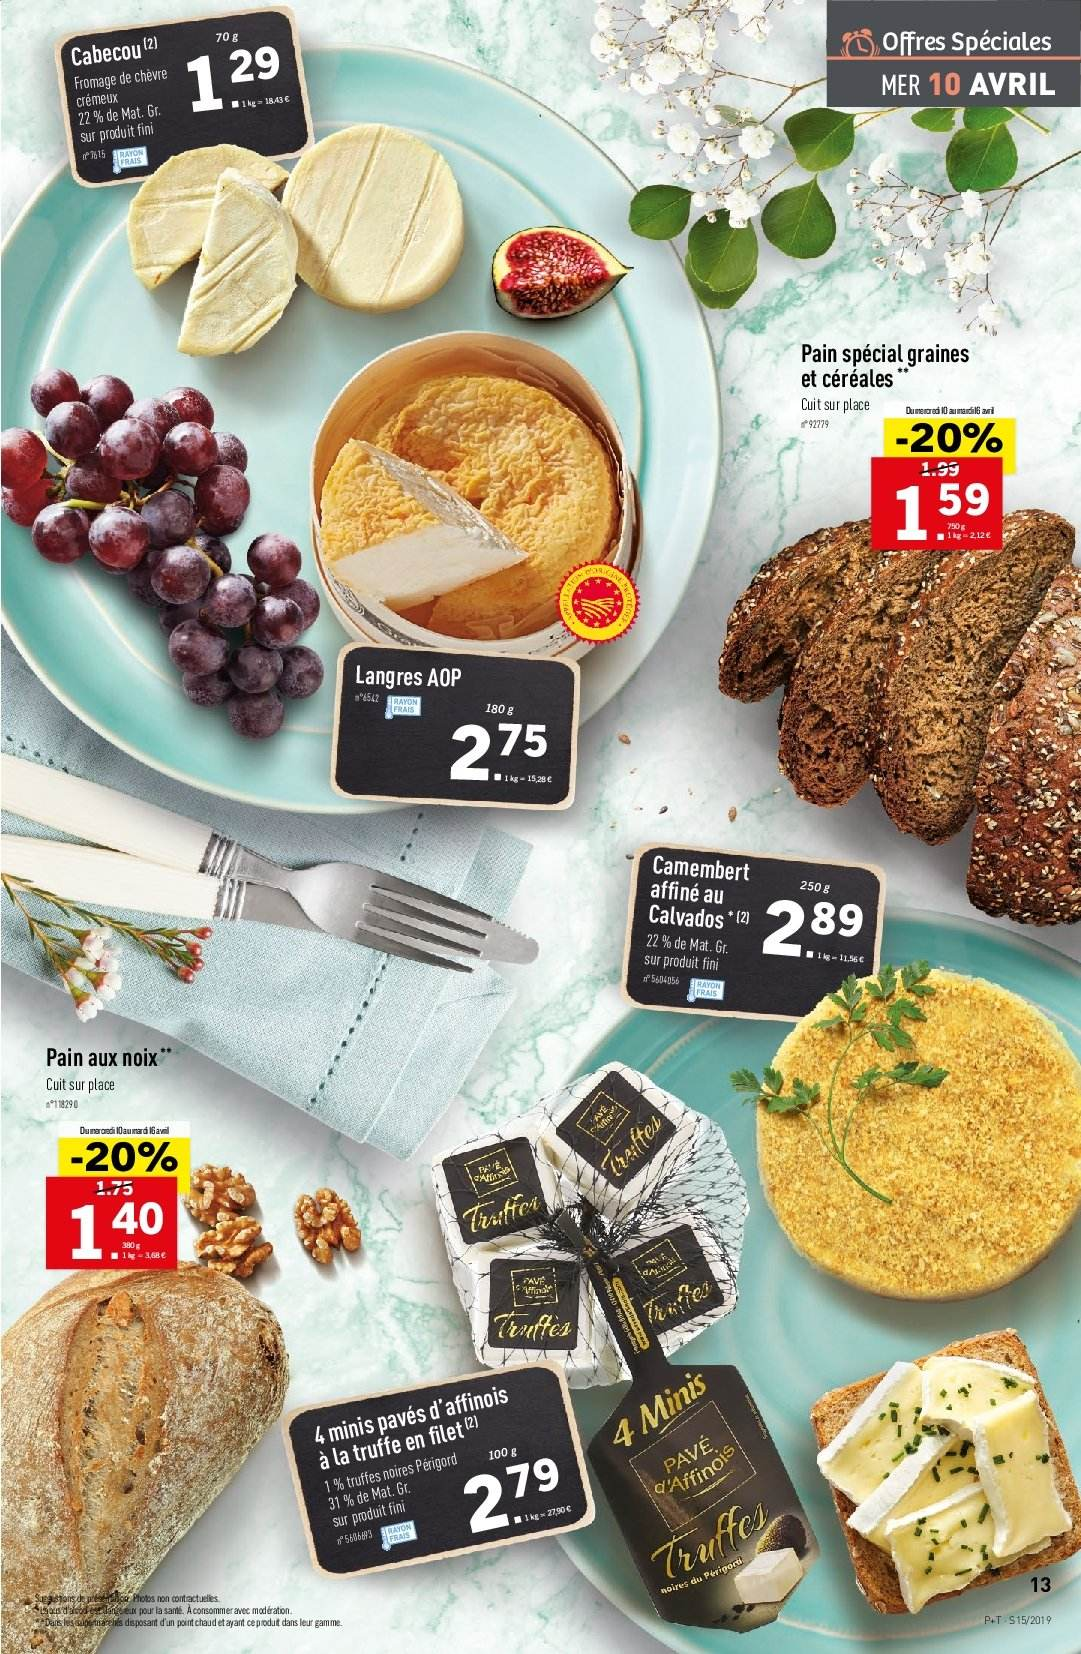 Catalogue Lidl - 10.04.2019 - 16.04.2019. Page 13.